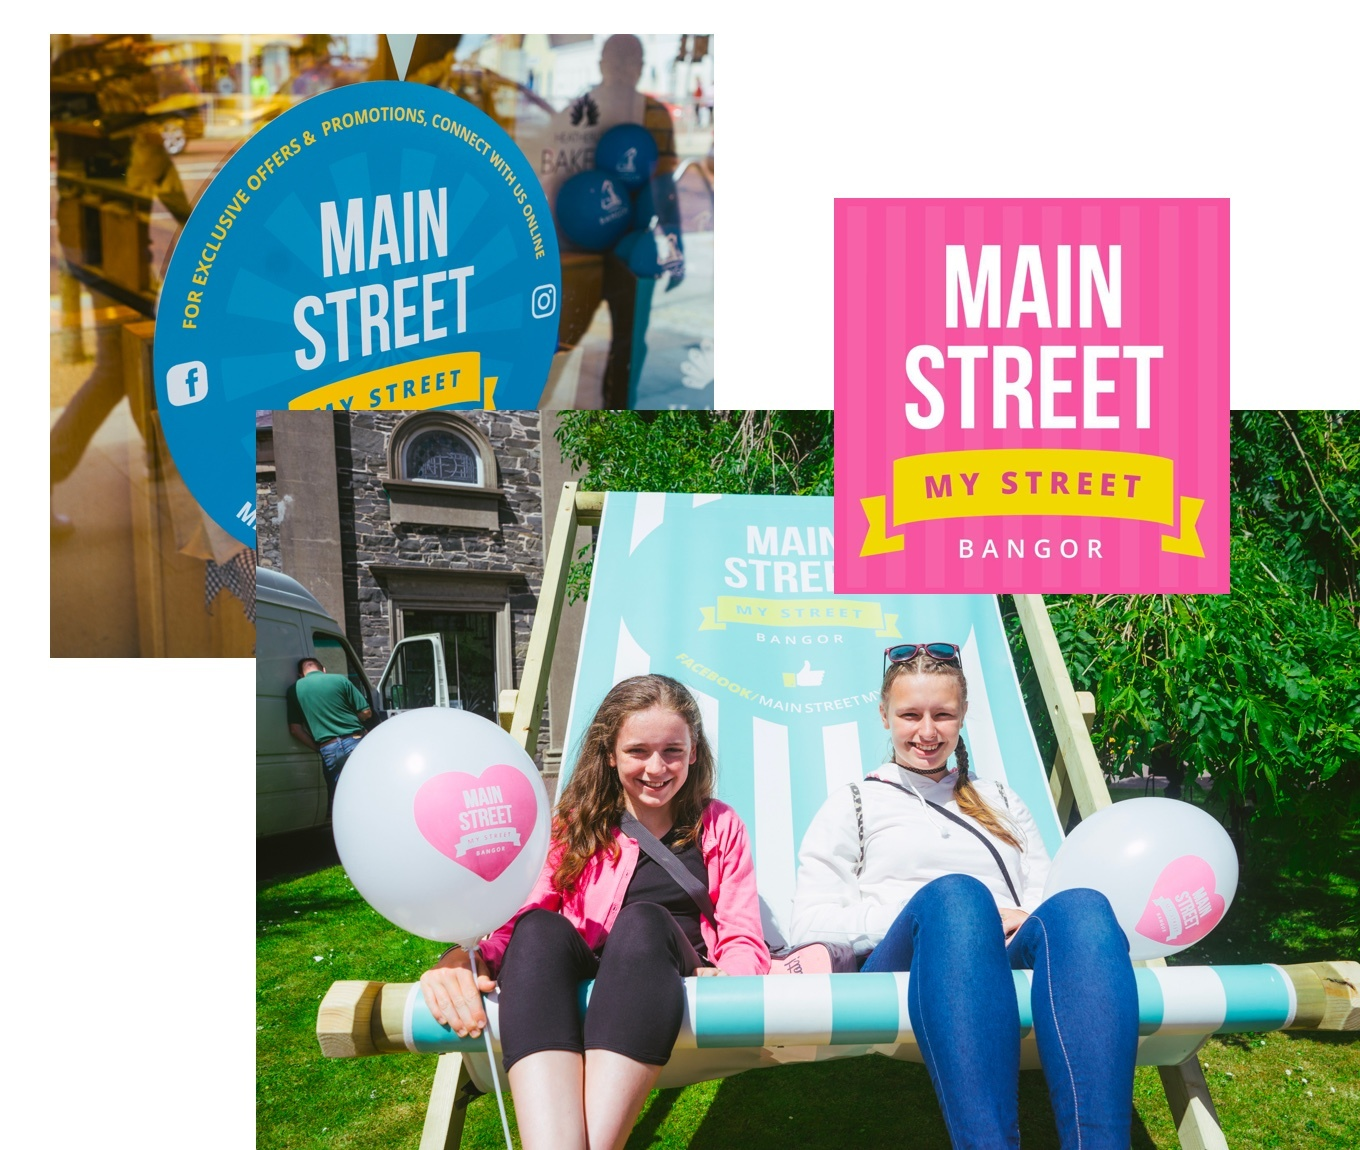 Main-street-my-street-reconnecting